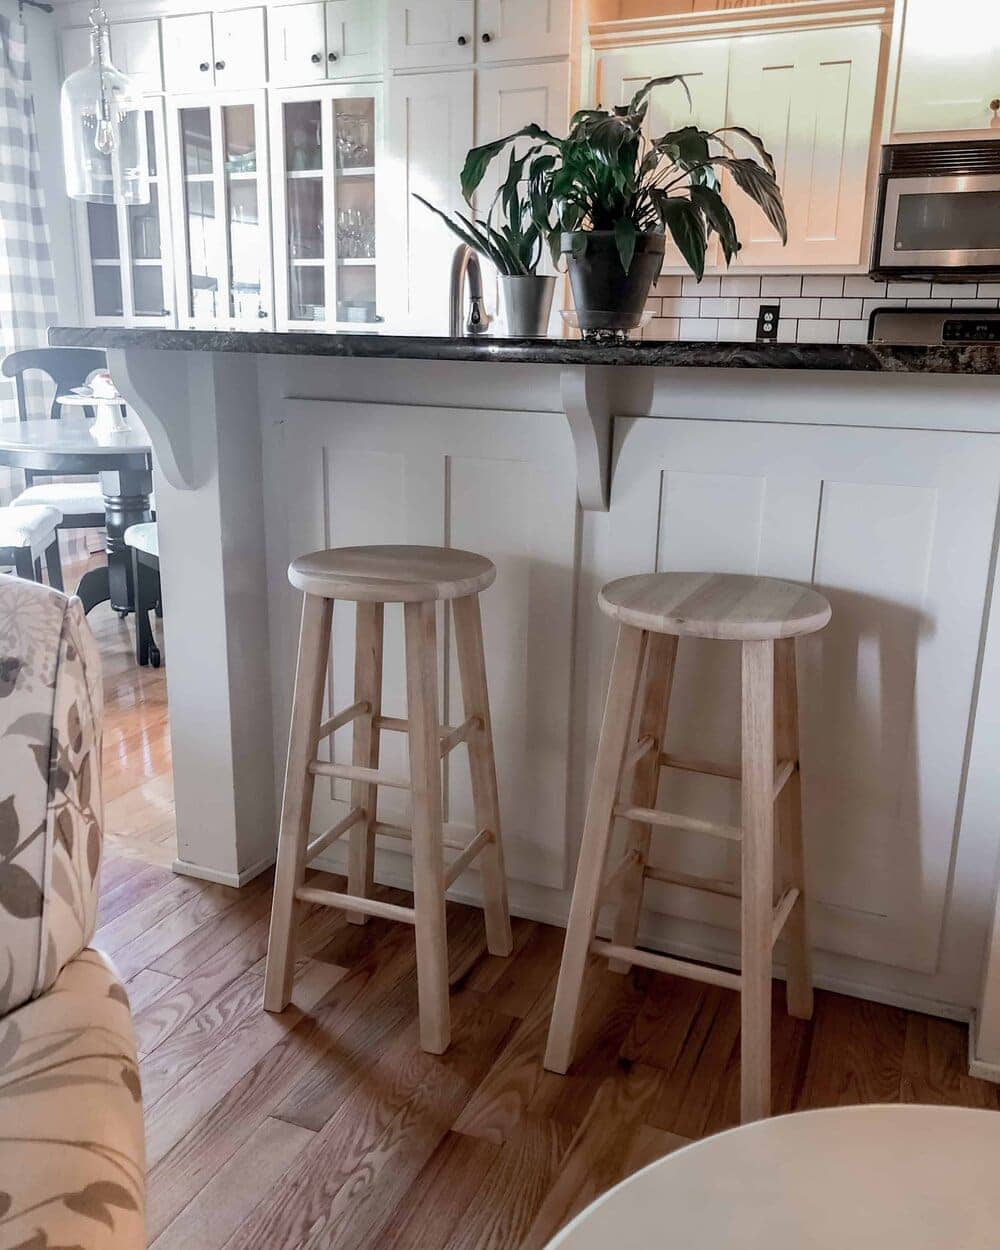 See how you can give ordinary bar stools and farmhouse makeover on a budget. Missouri Girl Home Blog